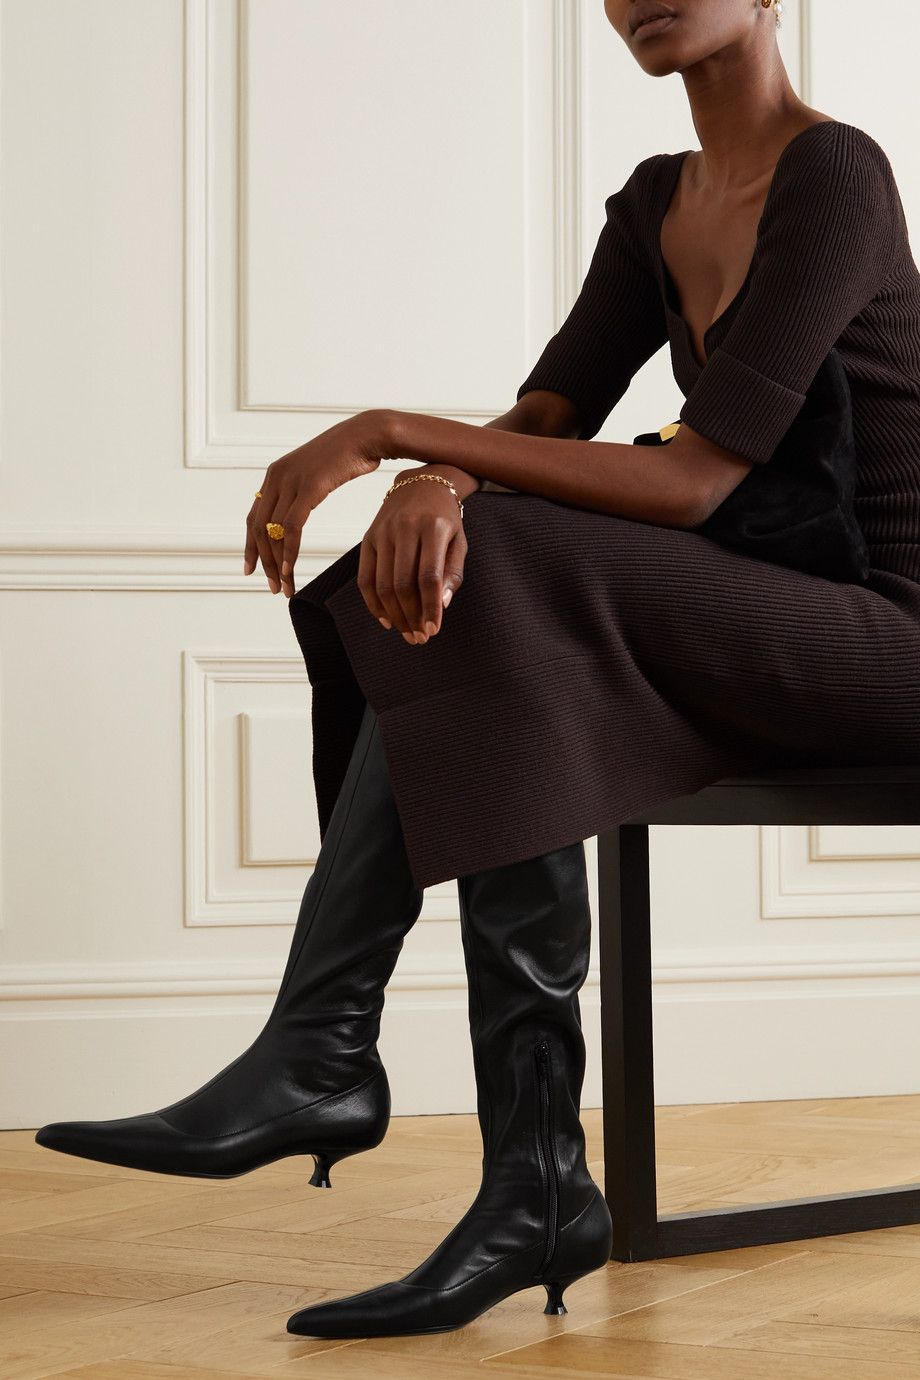 5 Boot Trends to Buy and Skip This Fall, According to Our Editors - outdated boot styles 282820 1630107003881